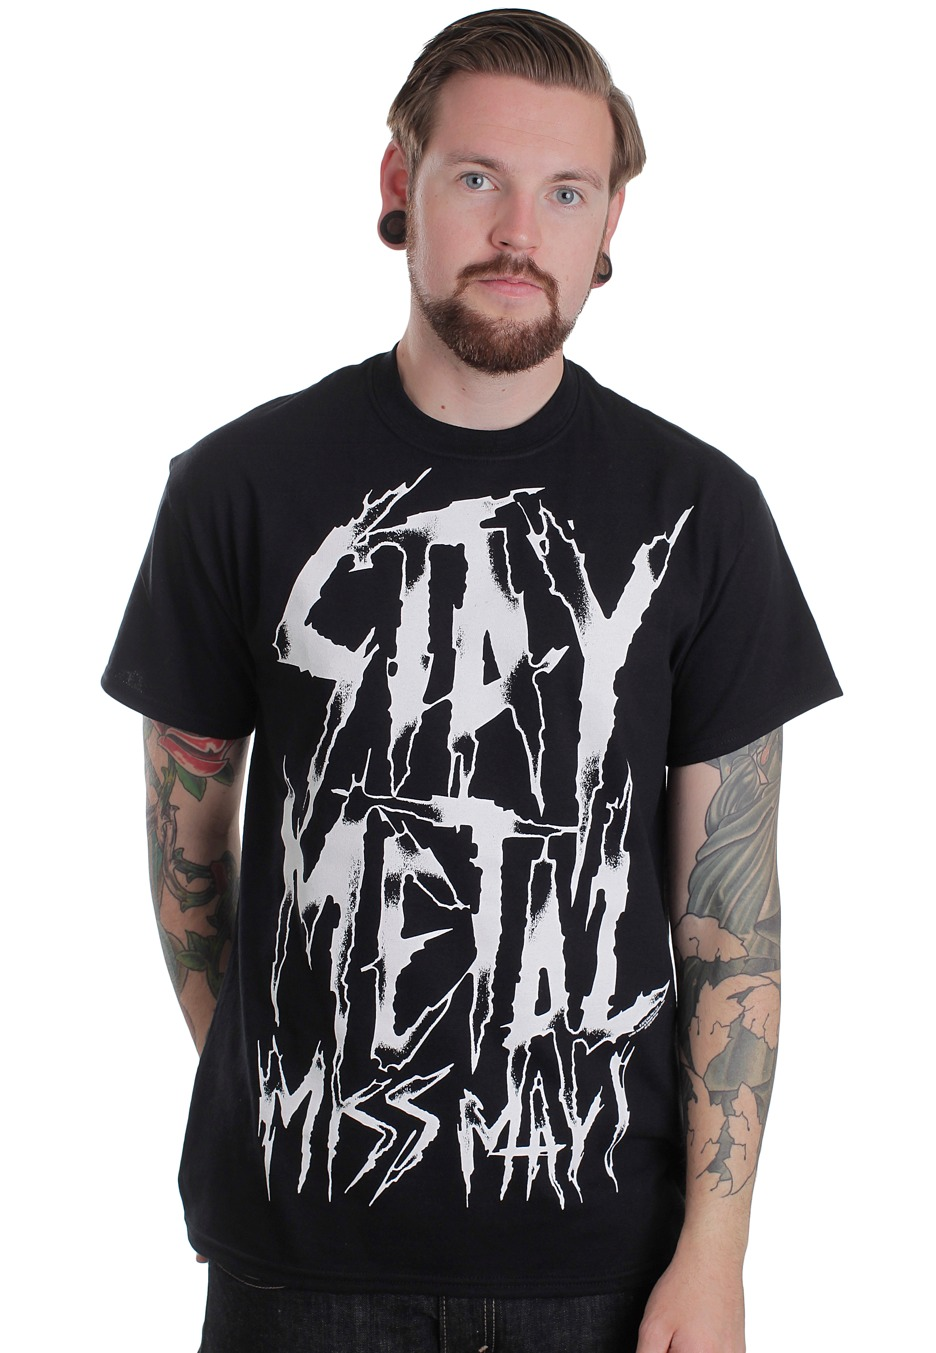 miss may i stay metal t shirt worldwide. Black Bedroom Furniture Sets. Home Design Ideas